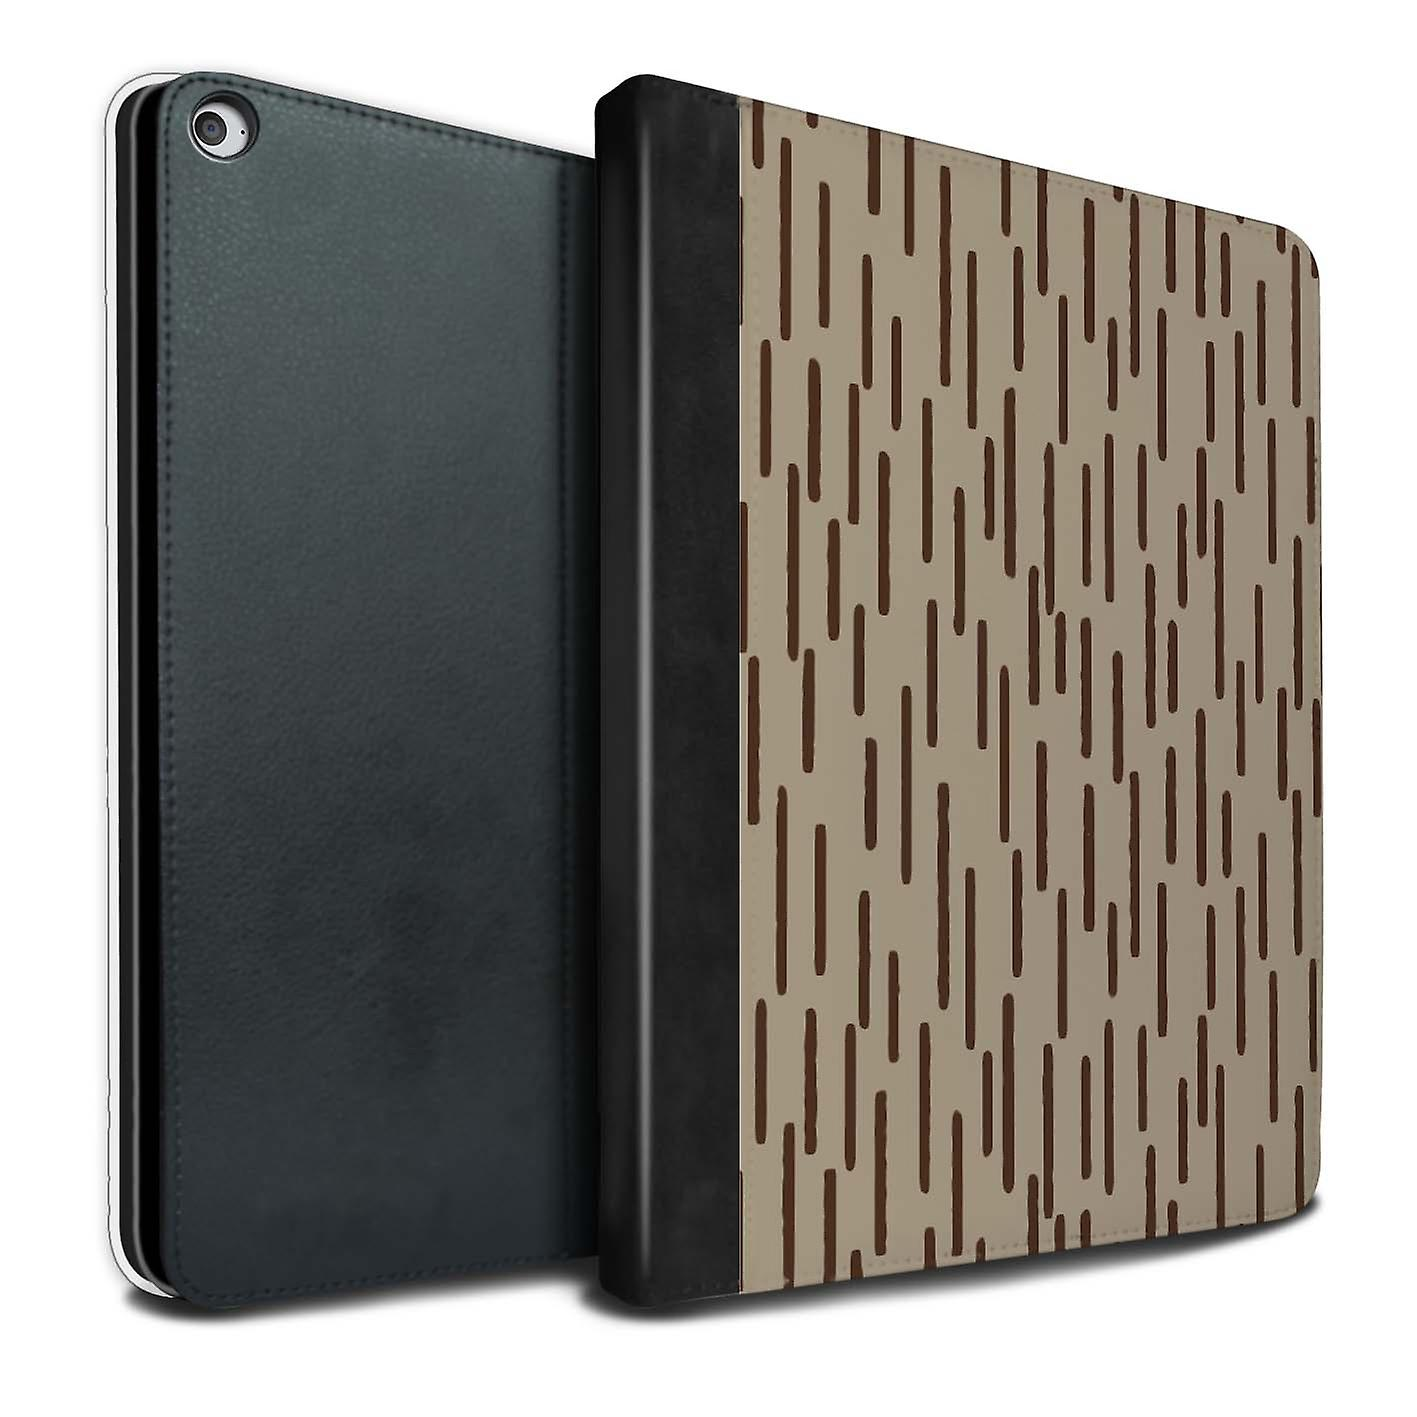 Stuff4 Pu Leather Book Cover Case For Apple Ipad Pro 12 9